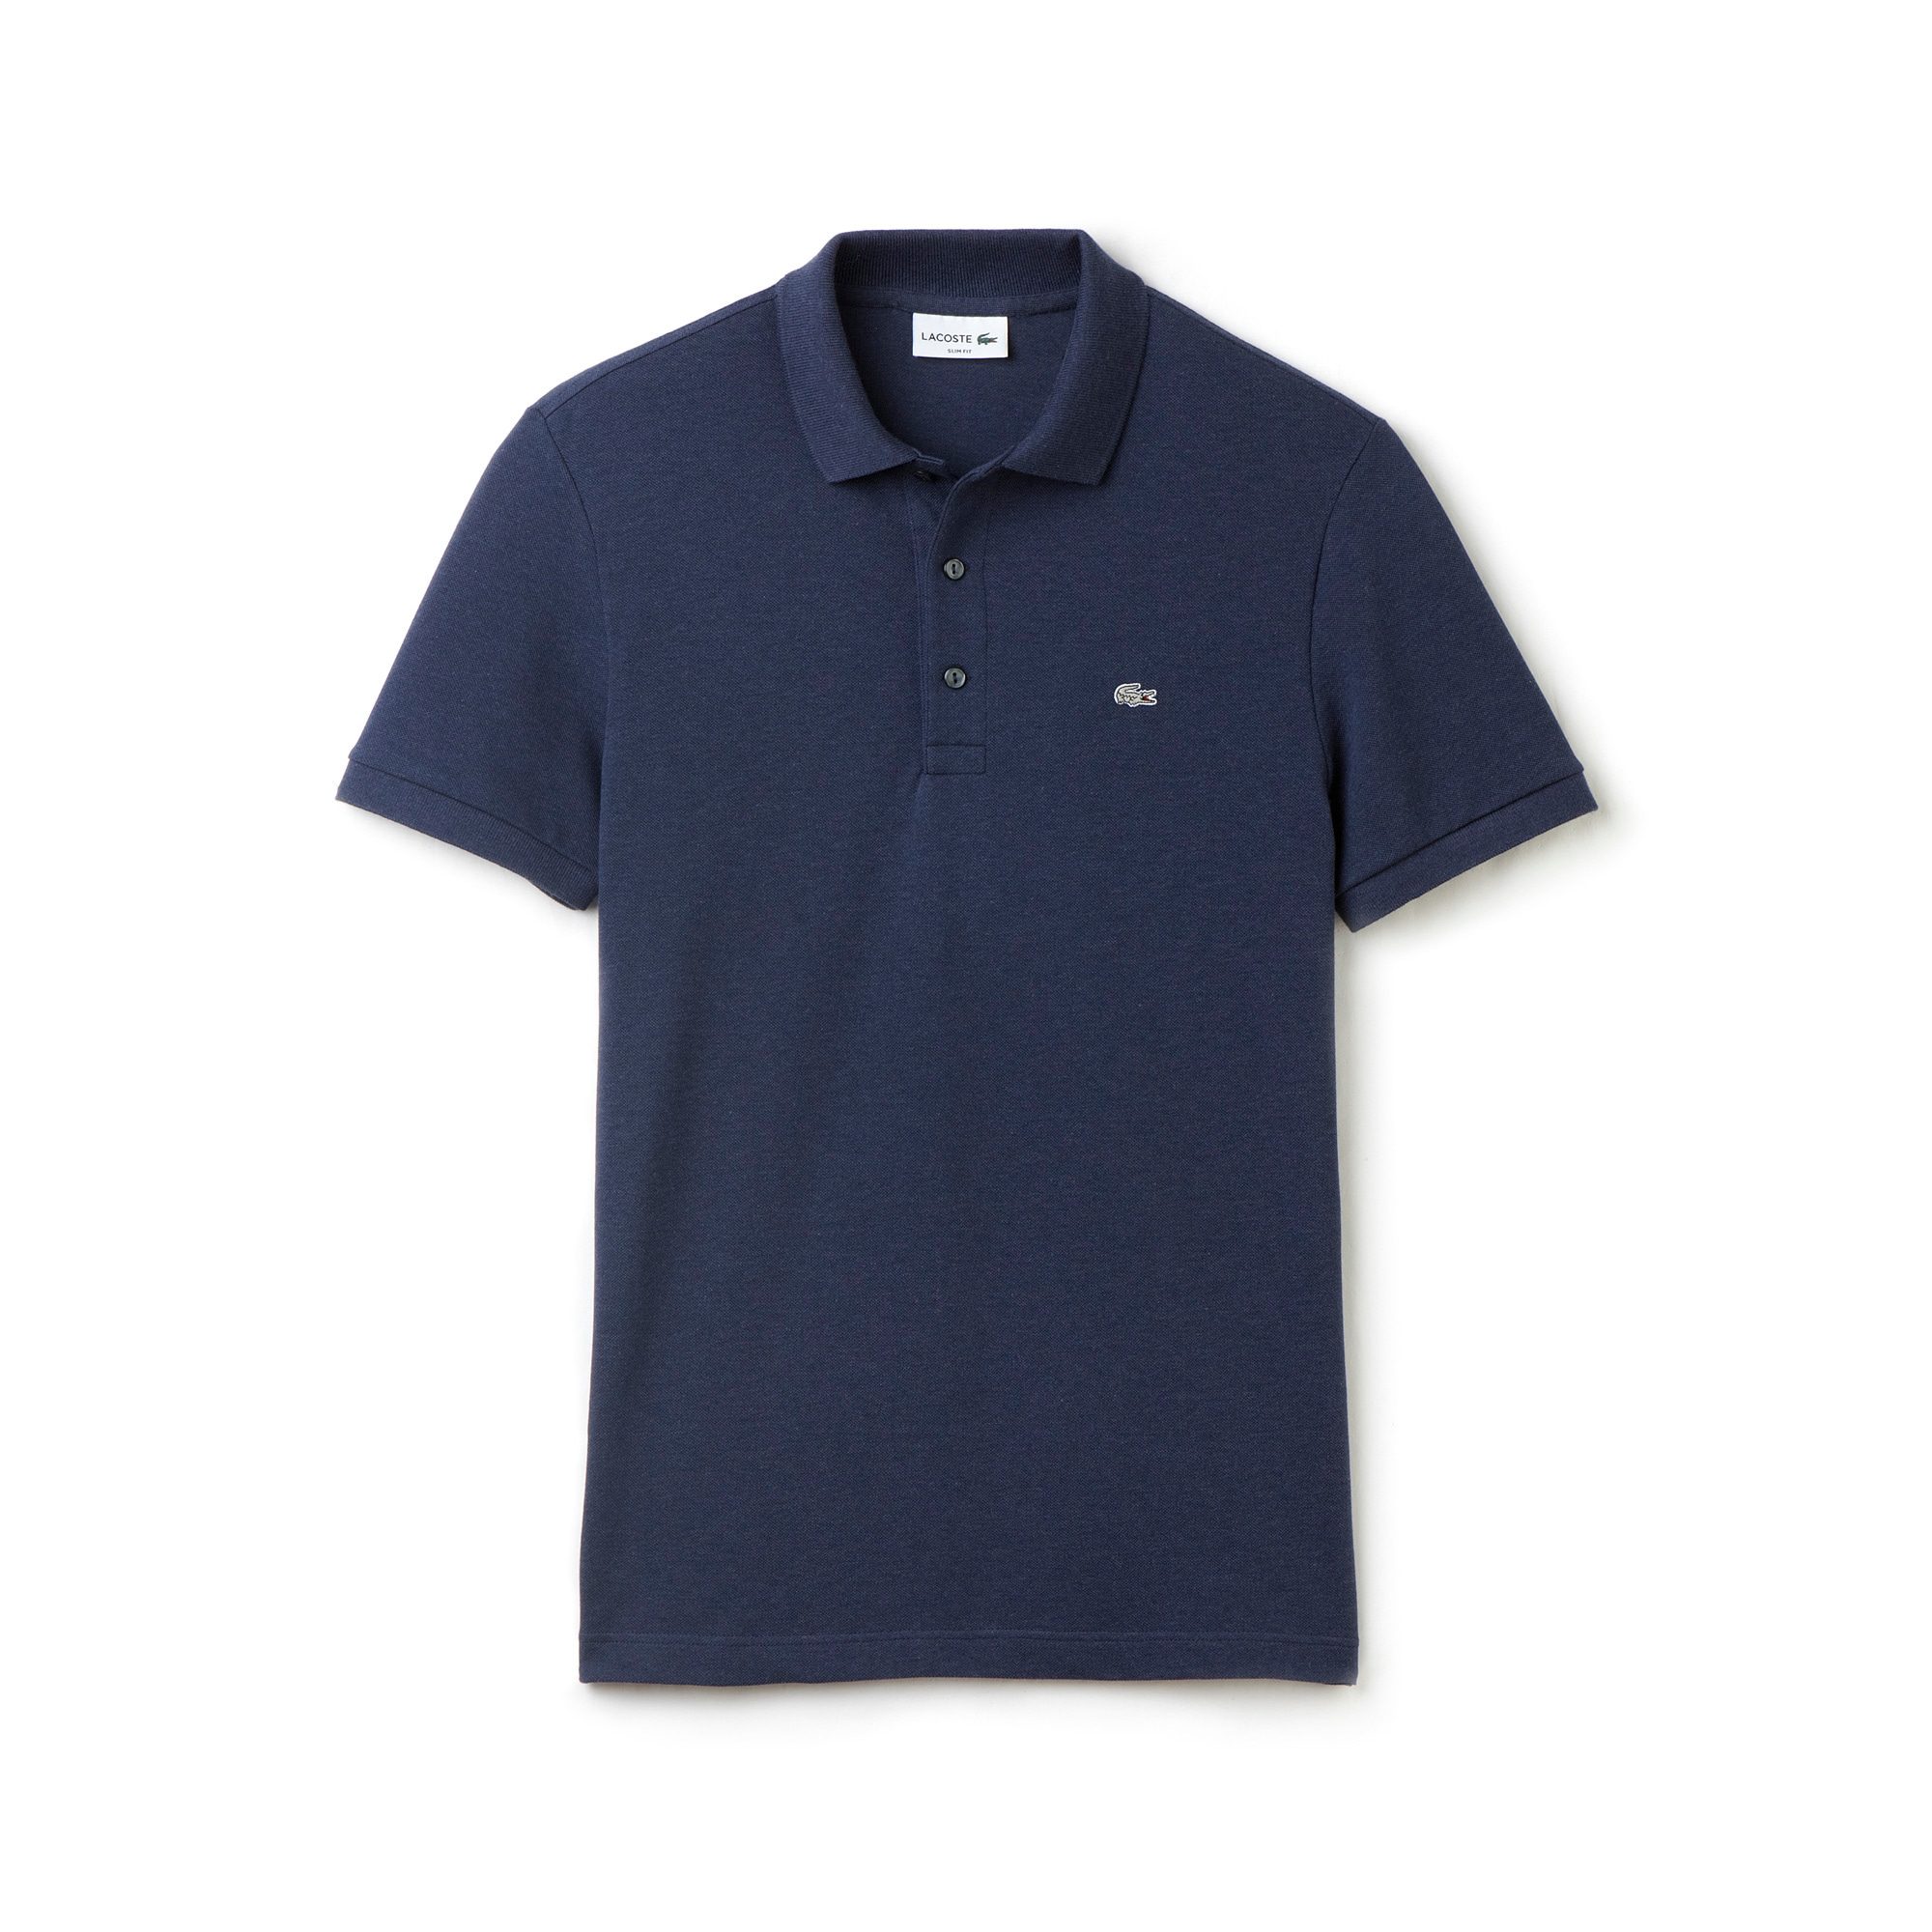 Guide des tailles - Polos homme